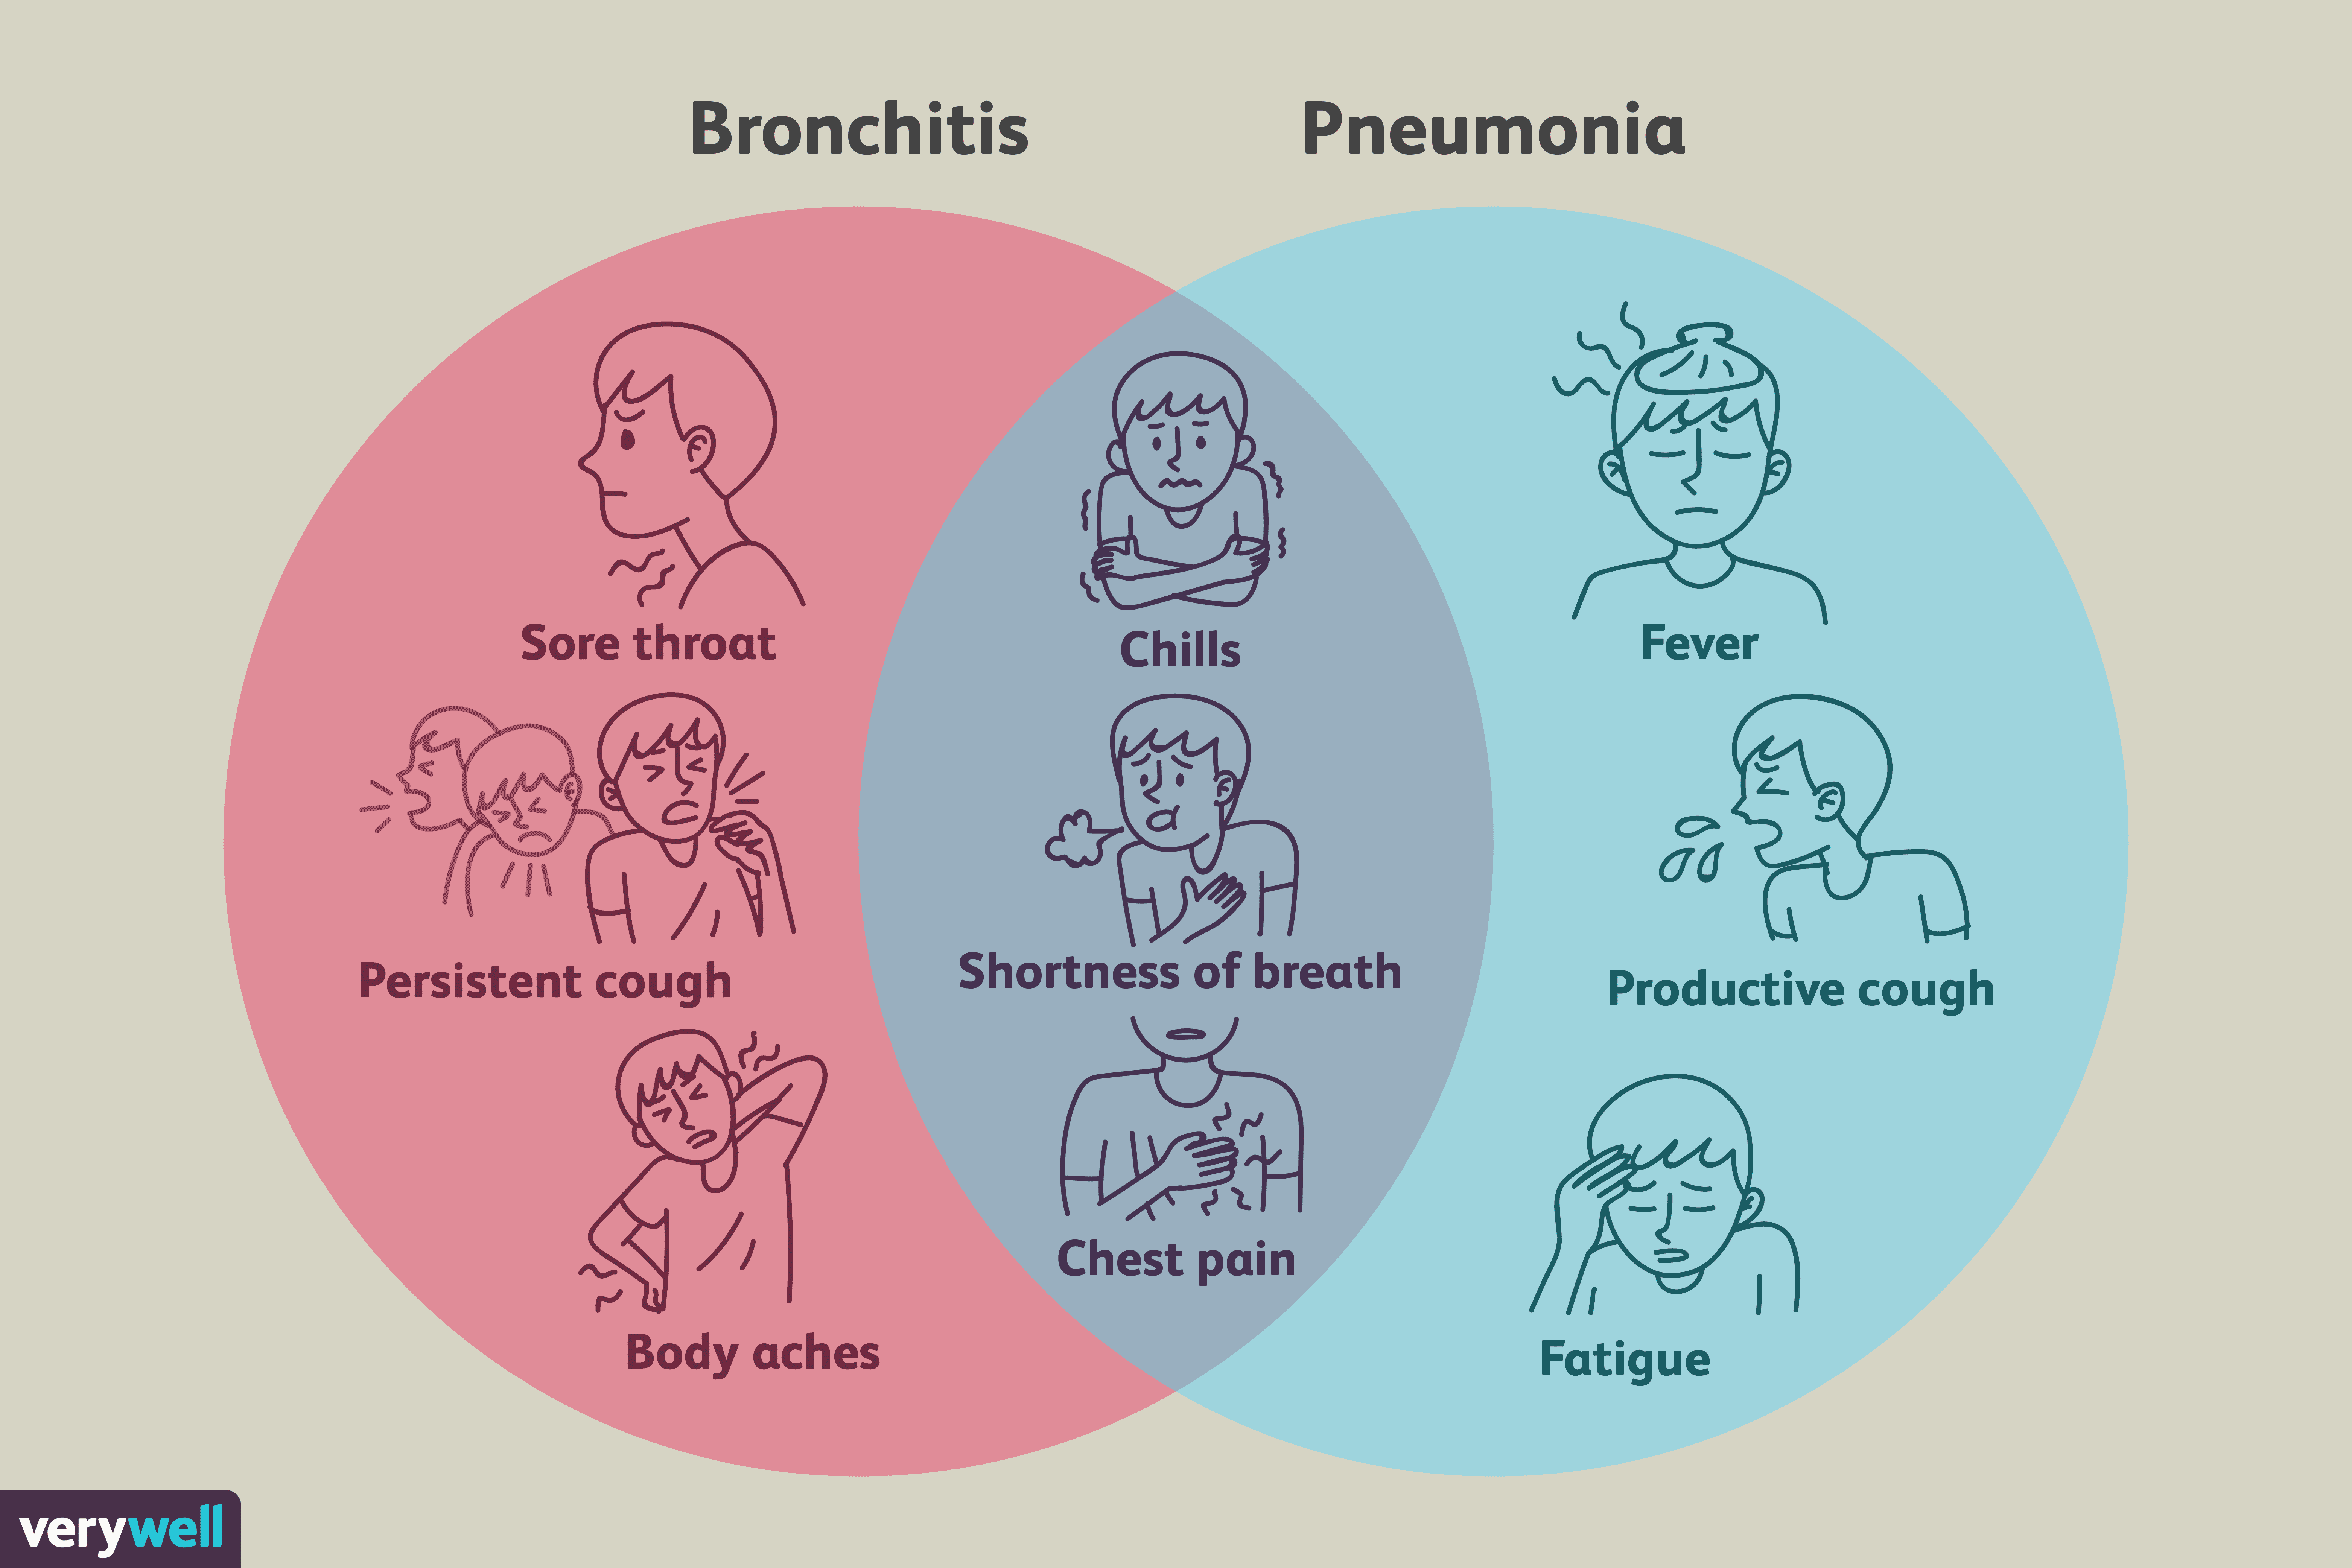 medium resolution of do you know the differences between pneumonia and bronchitis both cause coughs but they are very different illnesses